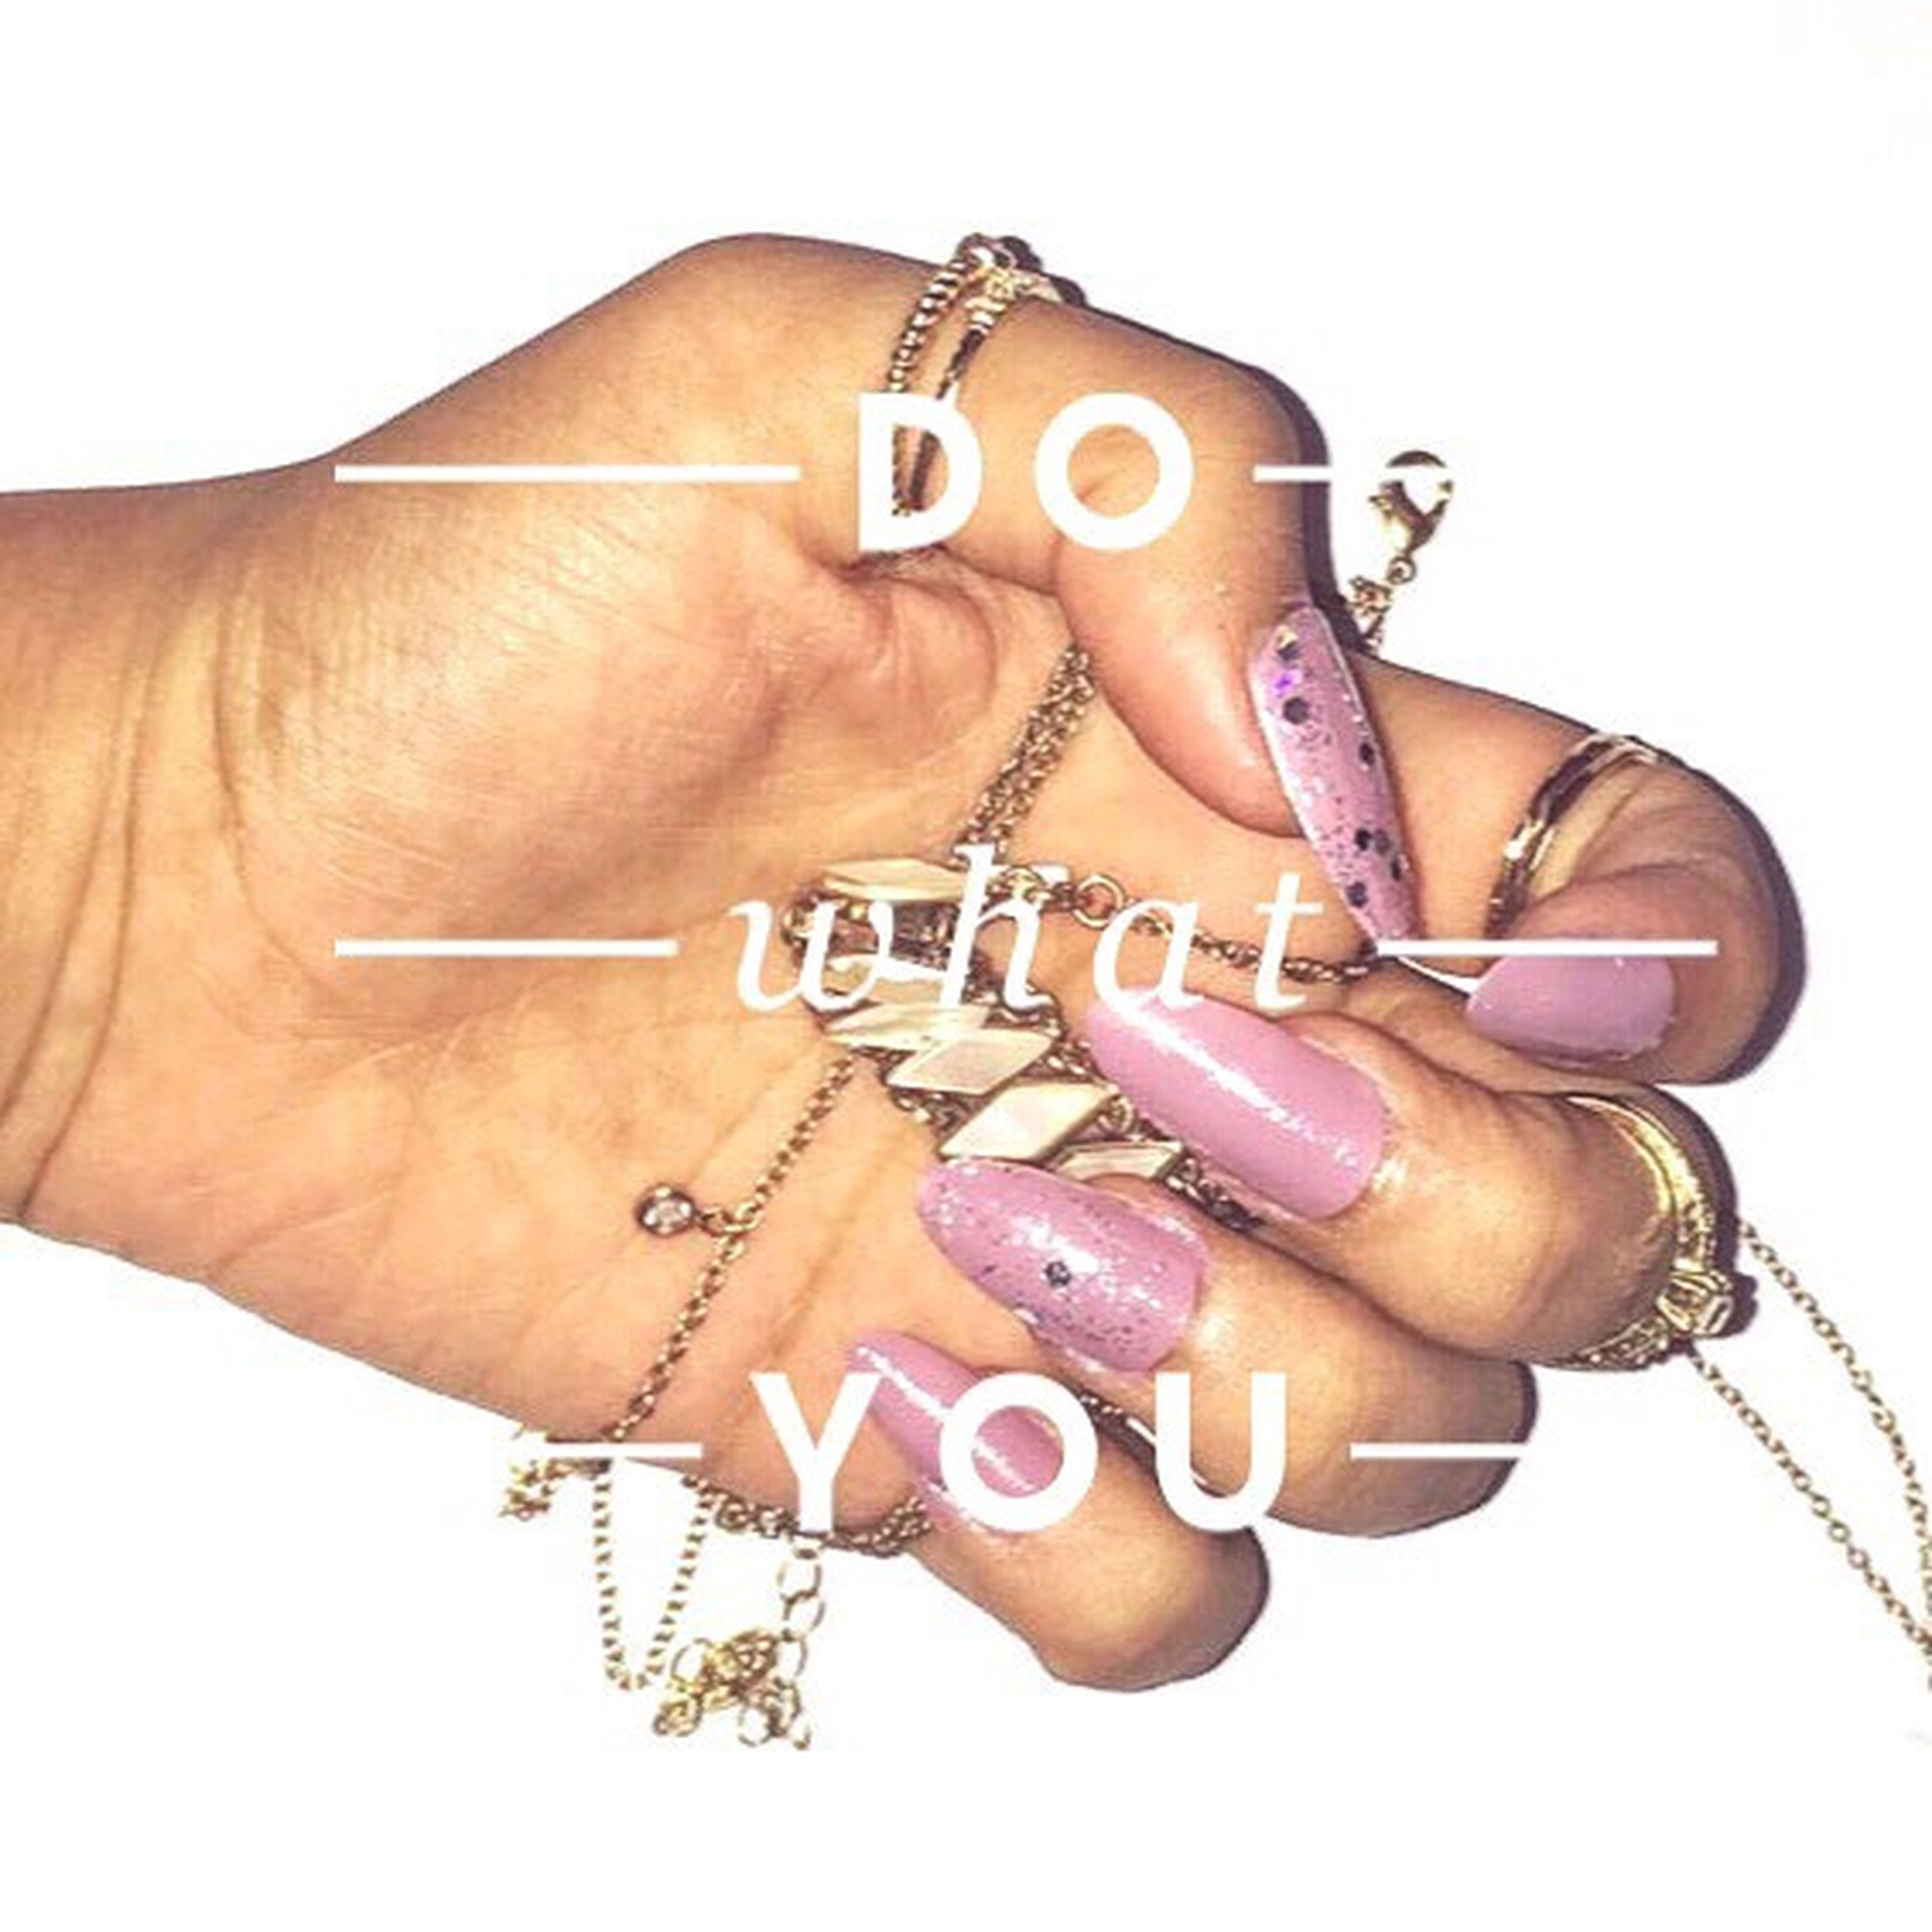 white background, studio shot, person, nail polish, holding, wristwatch, young adult, funky, fashionable, nail art